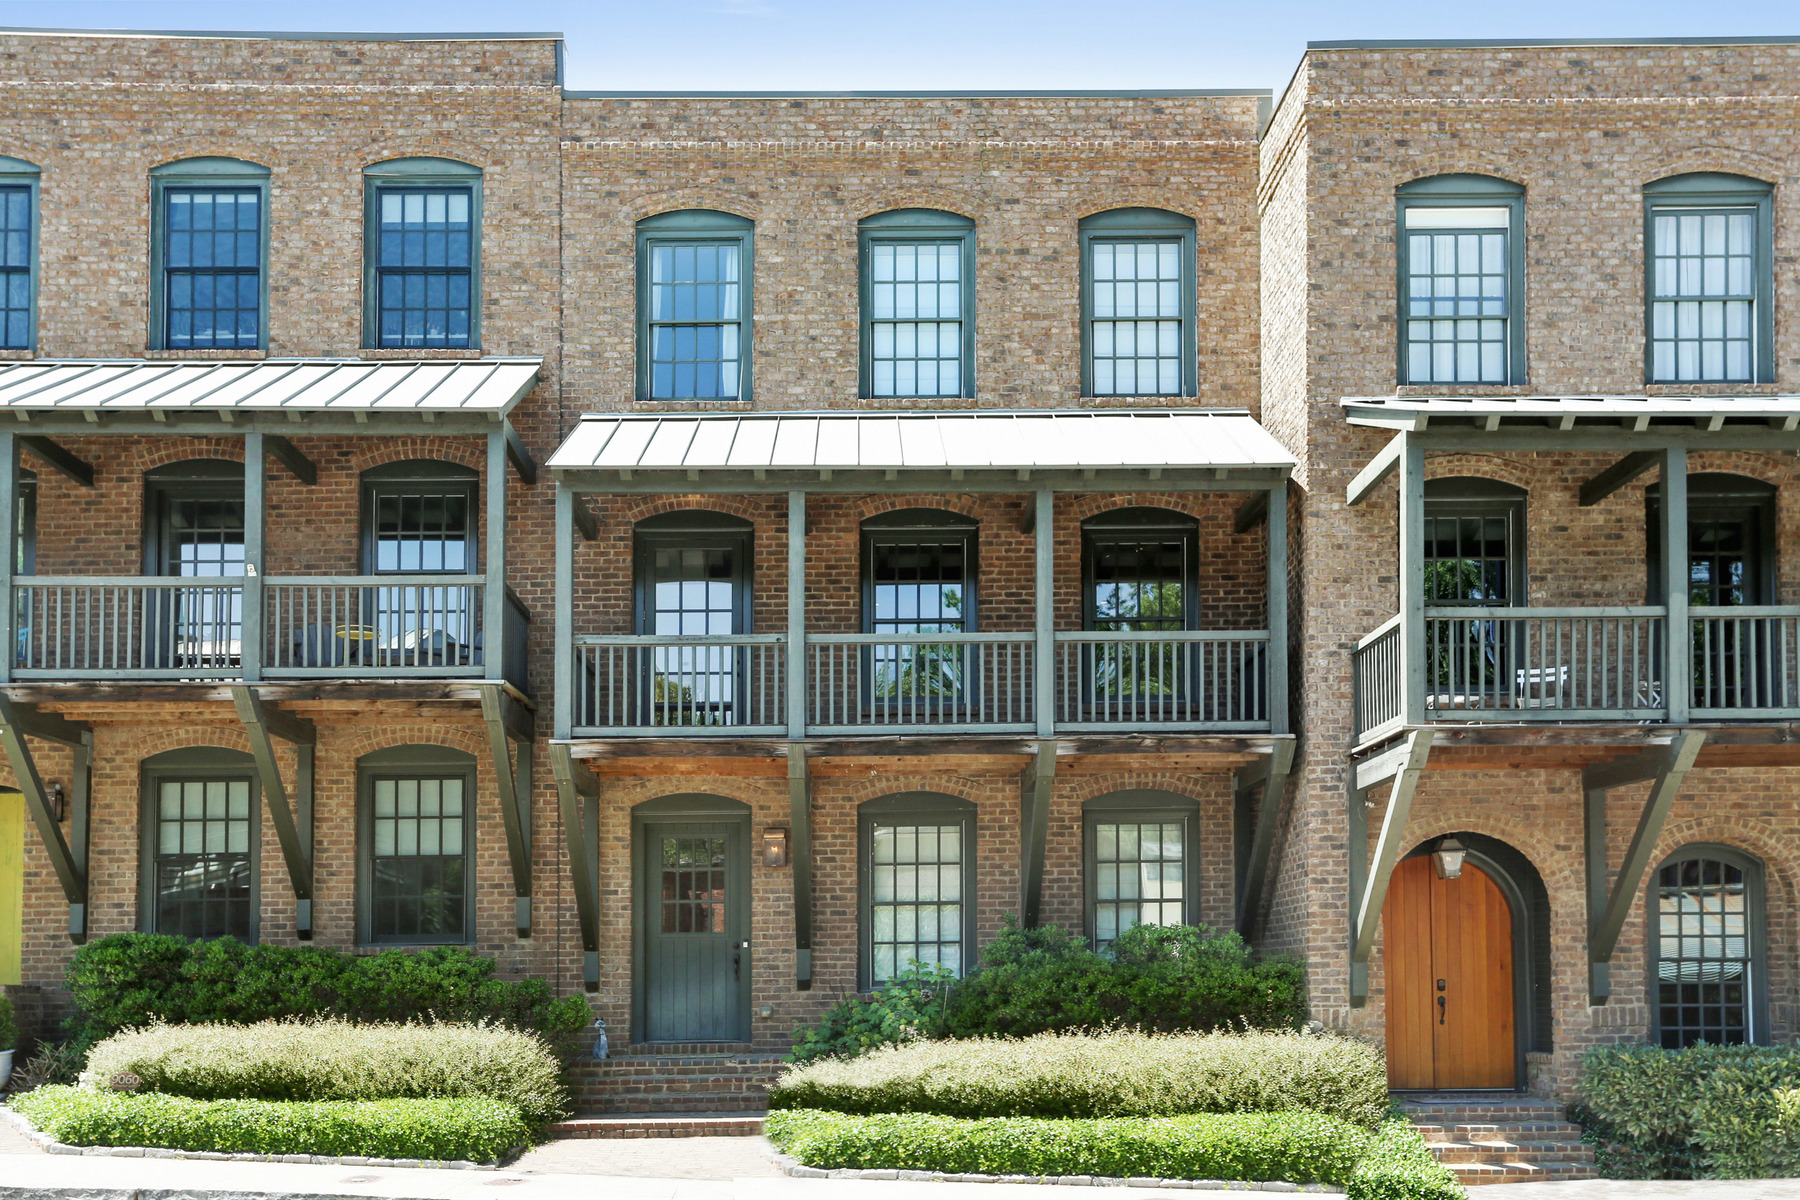 타운하우스 용 매매 에 Stately Townhome in Heart of Serenbe Community 9062 Selborne Lane Chattahoochee Hills, 조지아, 30268 미국